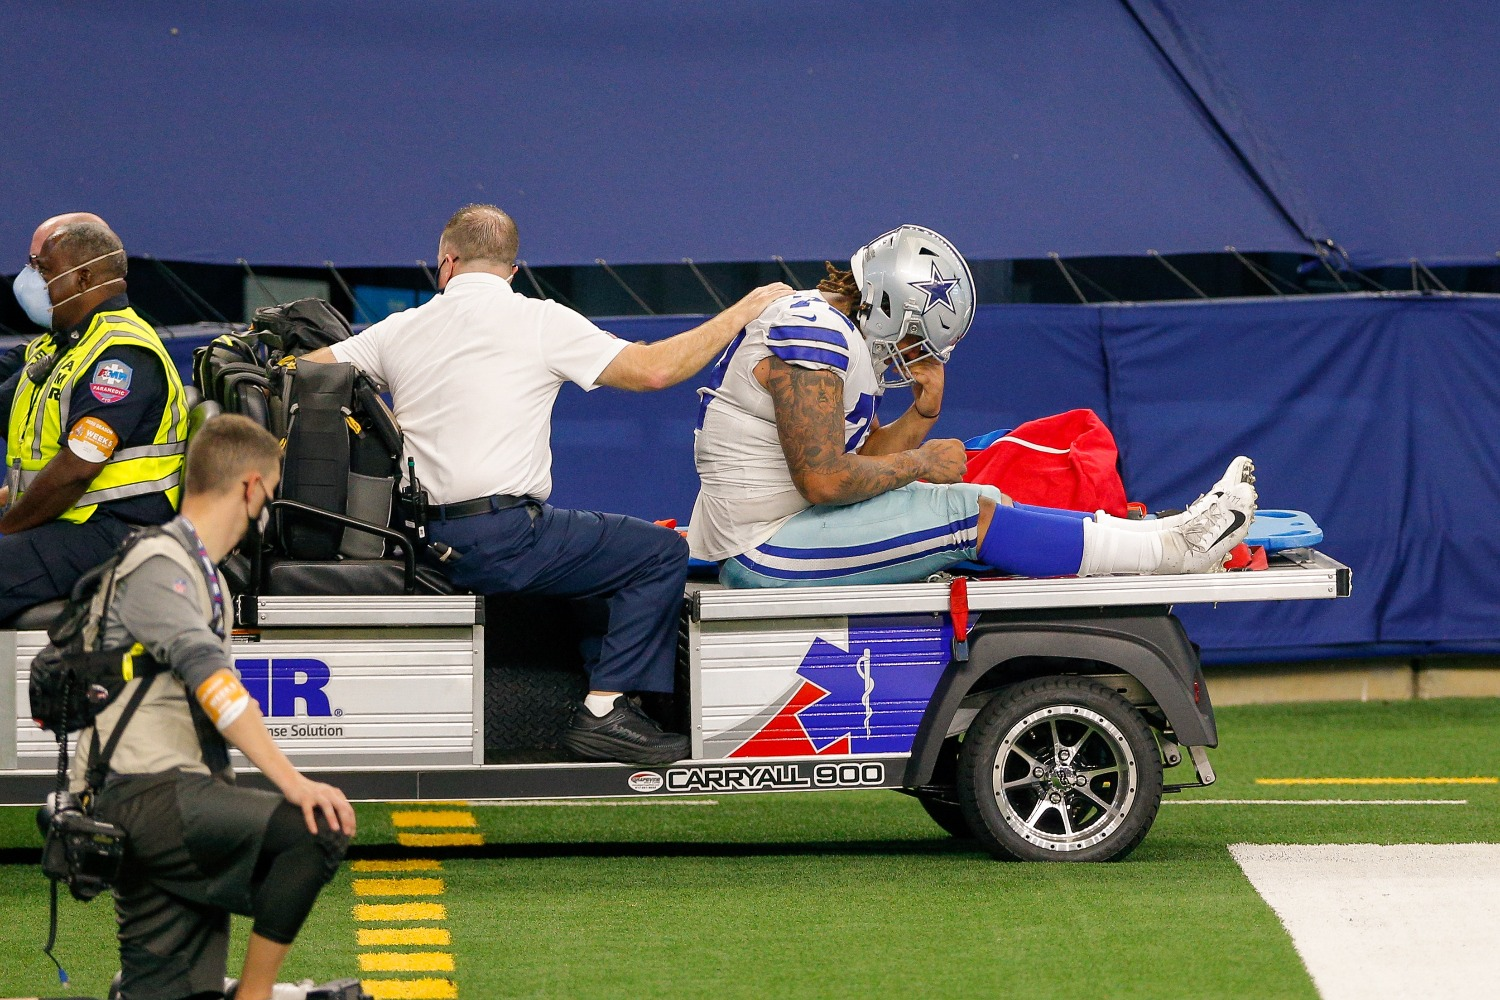 The Dallas Cowboys just suffered another devastating blow to their defense, as starting DT Trysten Hill tore his ACL on Sunday.